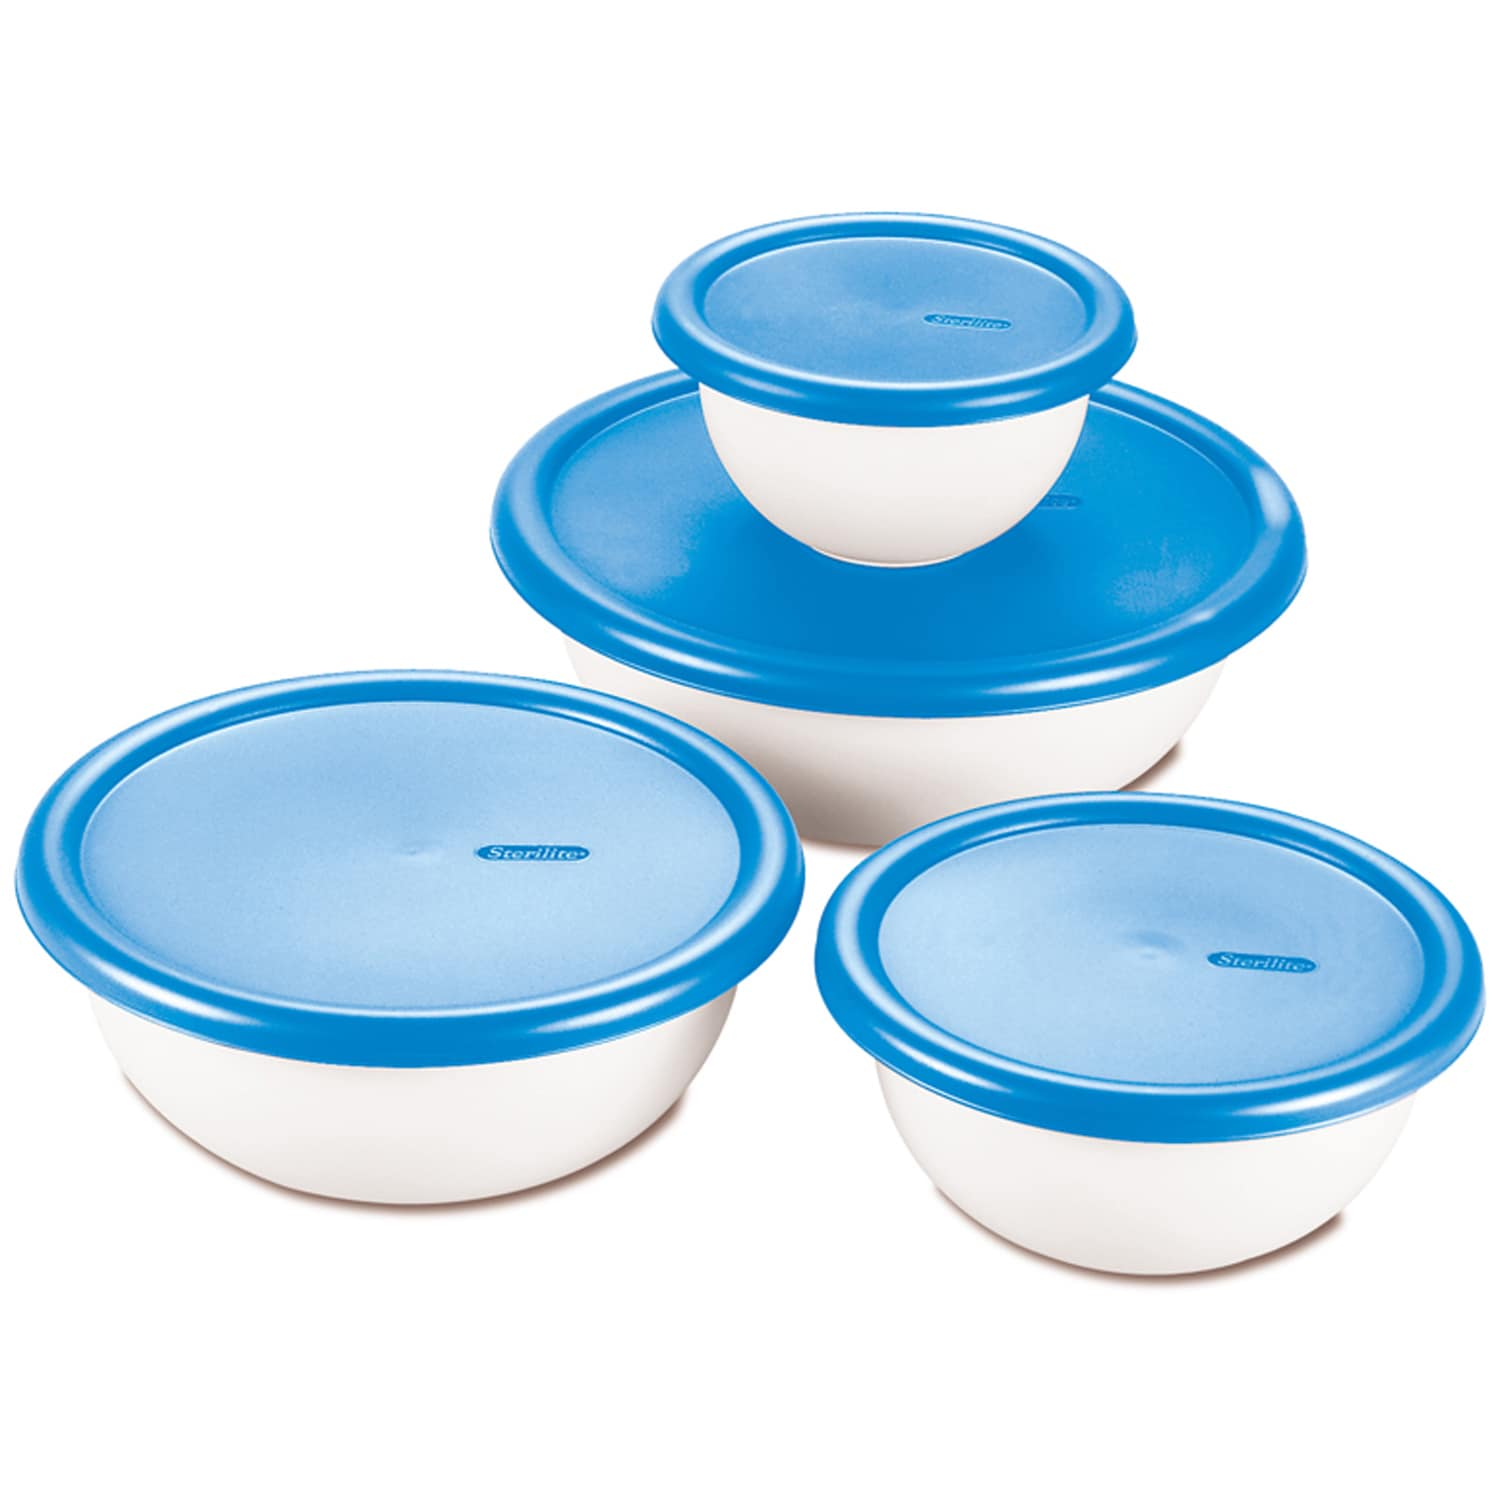 Sterilite 07479406 8 Piece White & Blue Covered Bowl Set ...